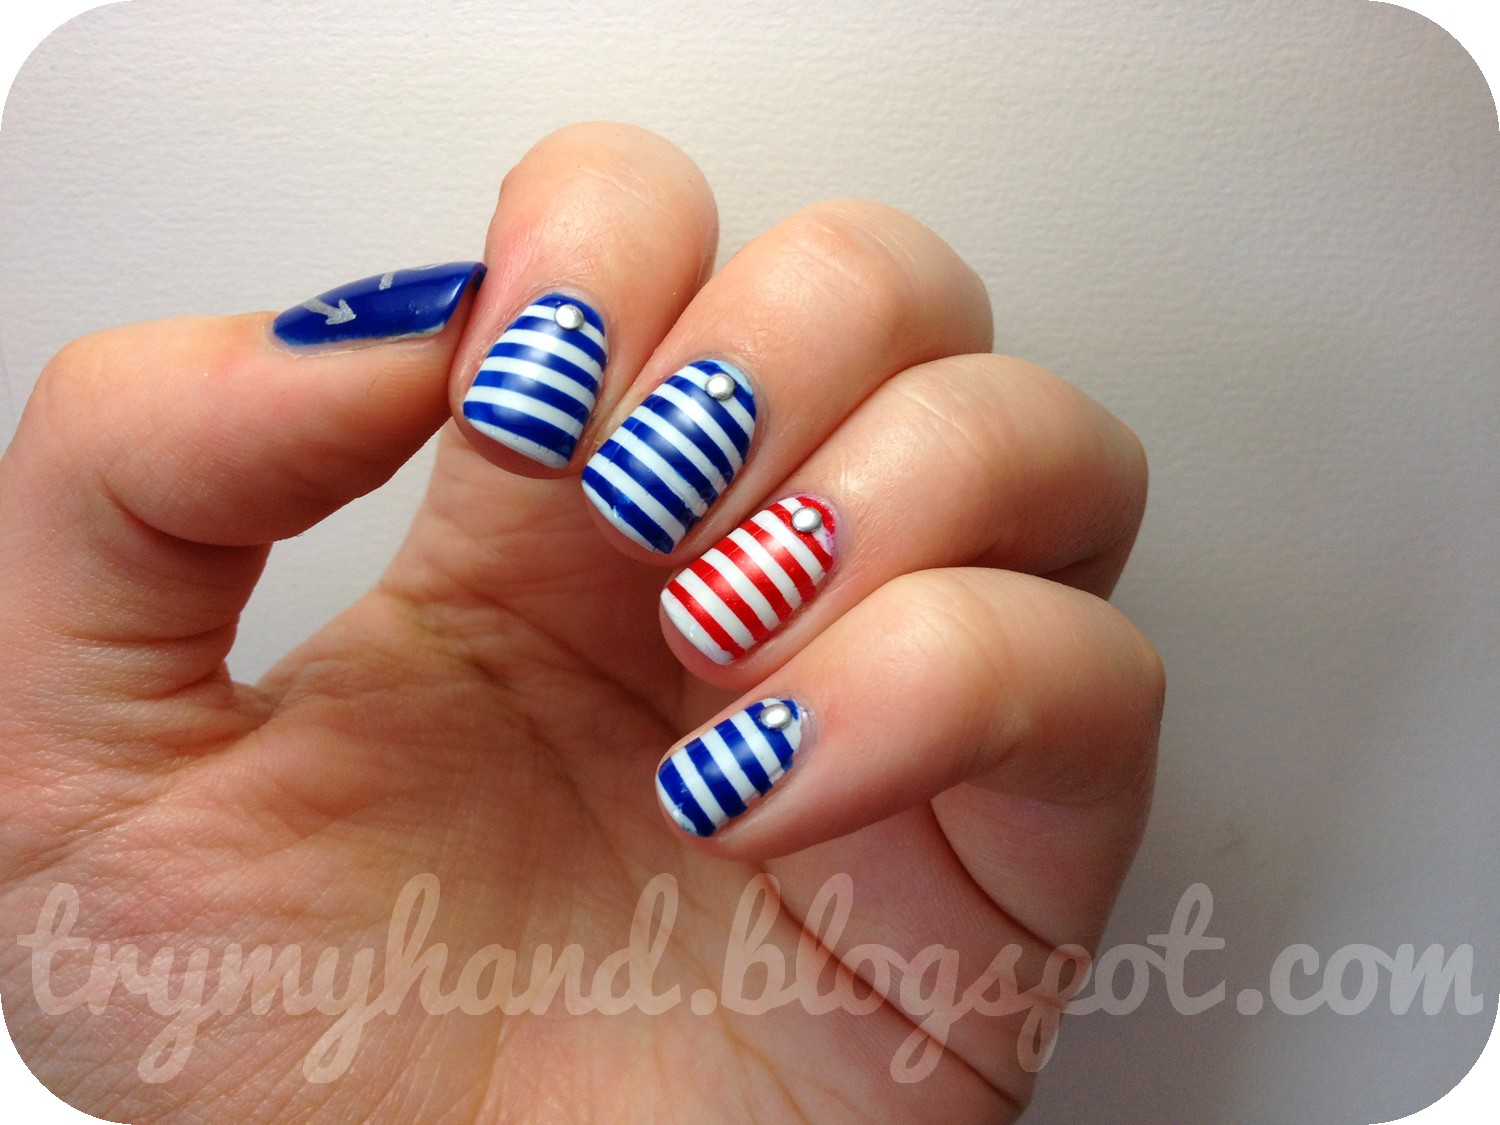 Try My Hand Alphabet Nail Art Challenge N For Nautical